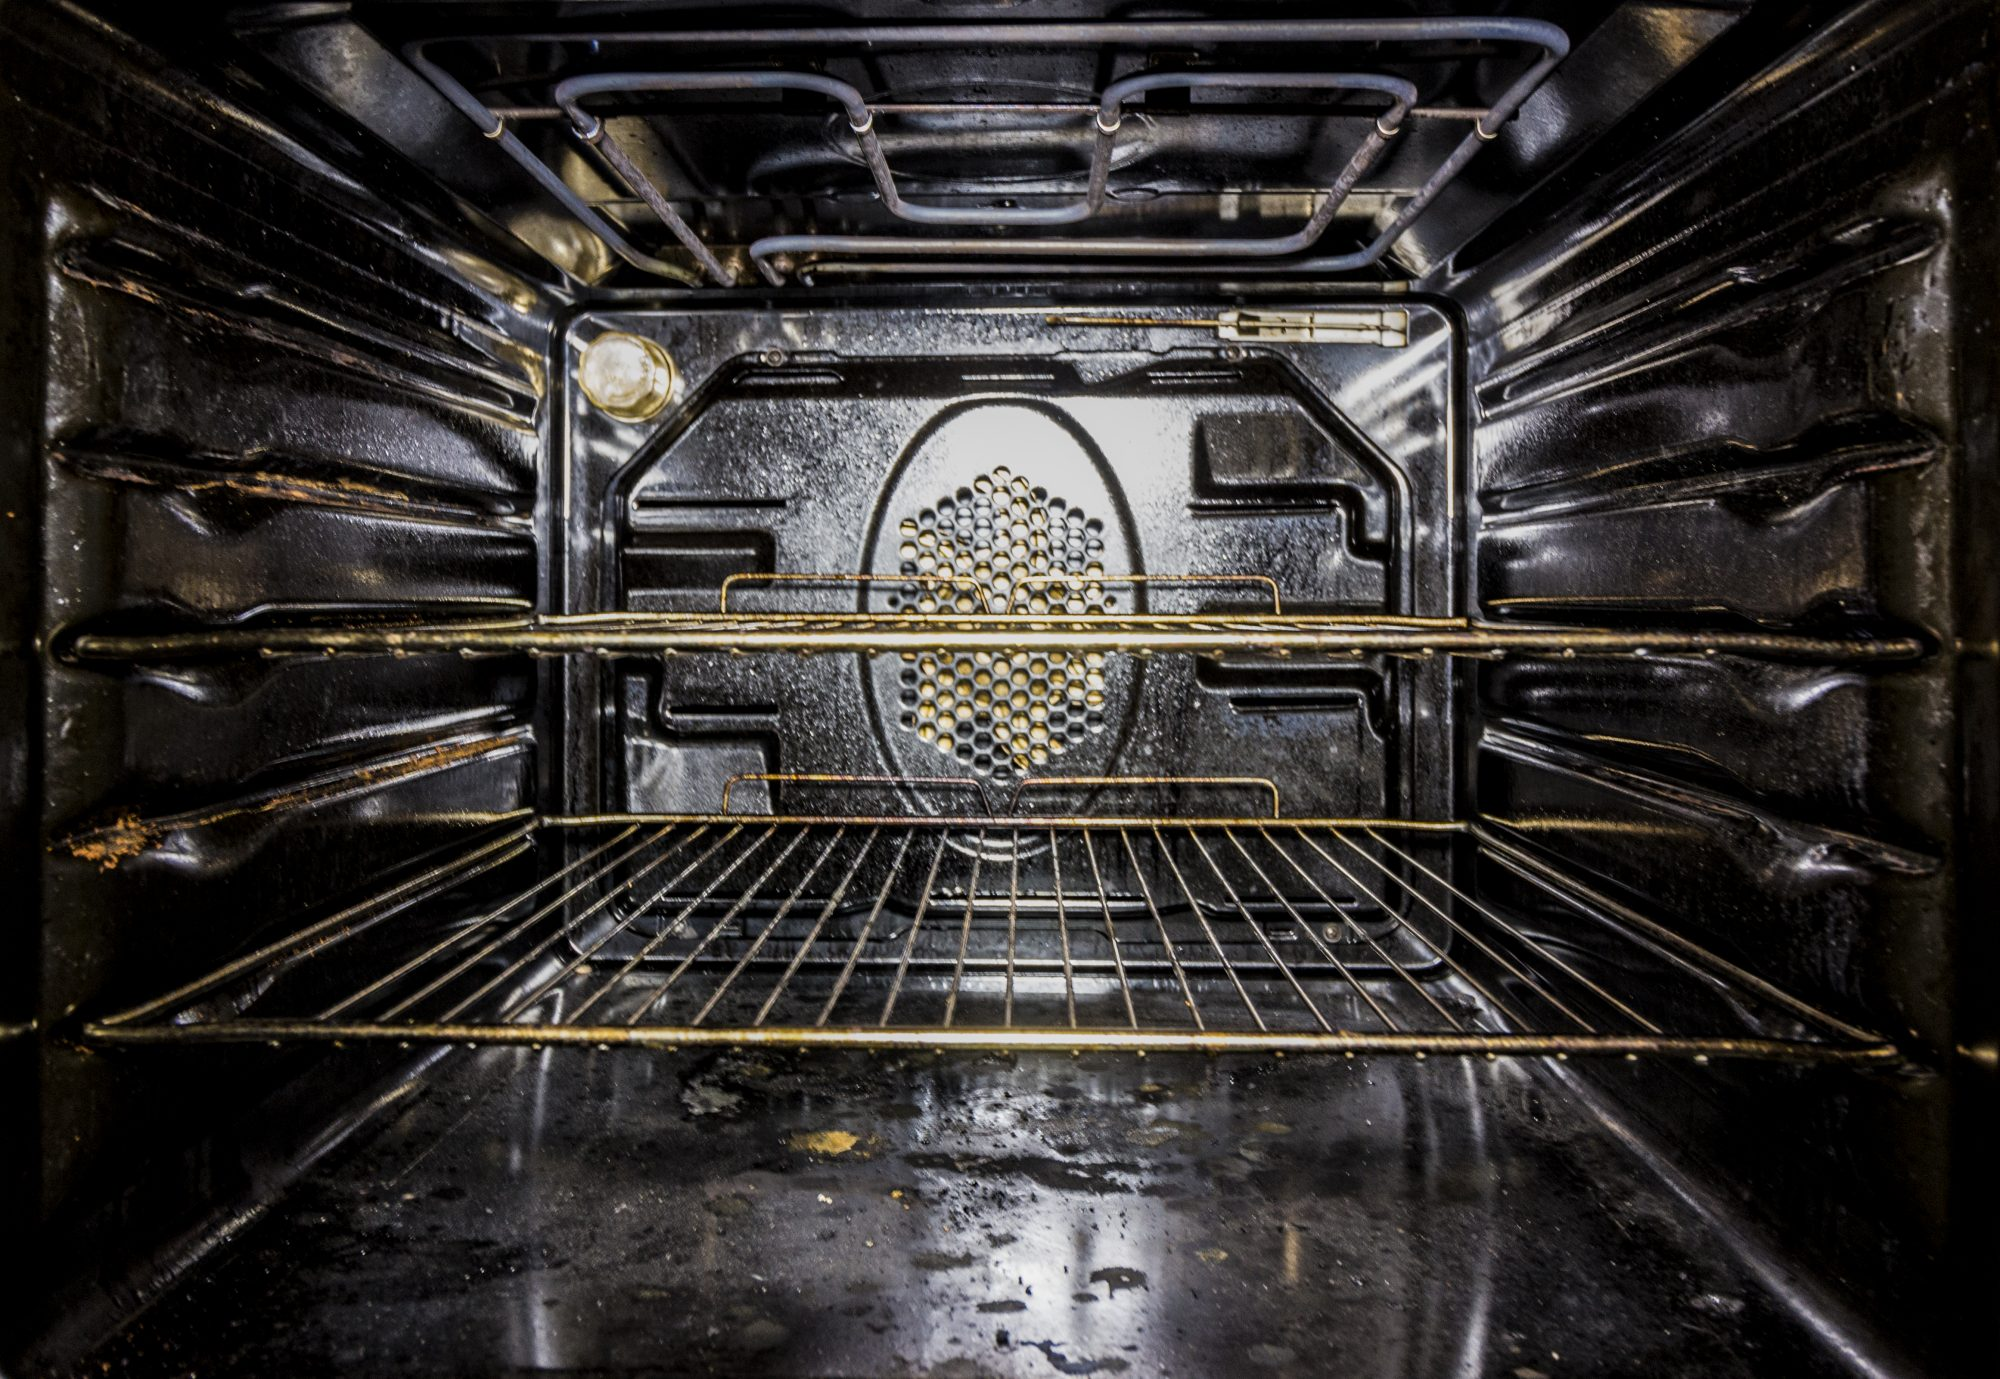 7 Oven-Cleaning Tips I'm Ready to Try This Weekend